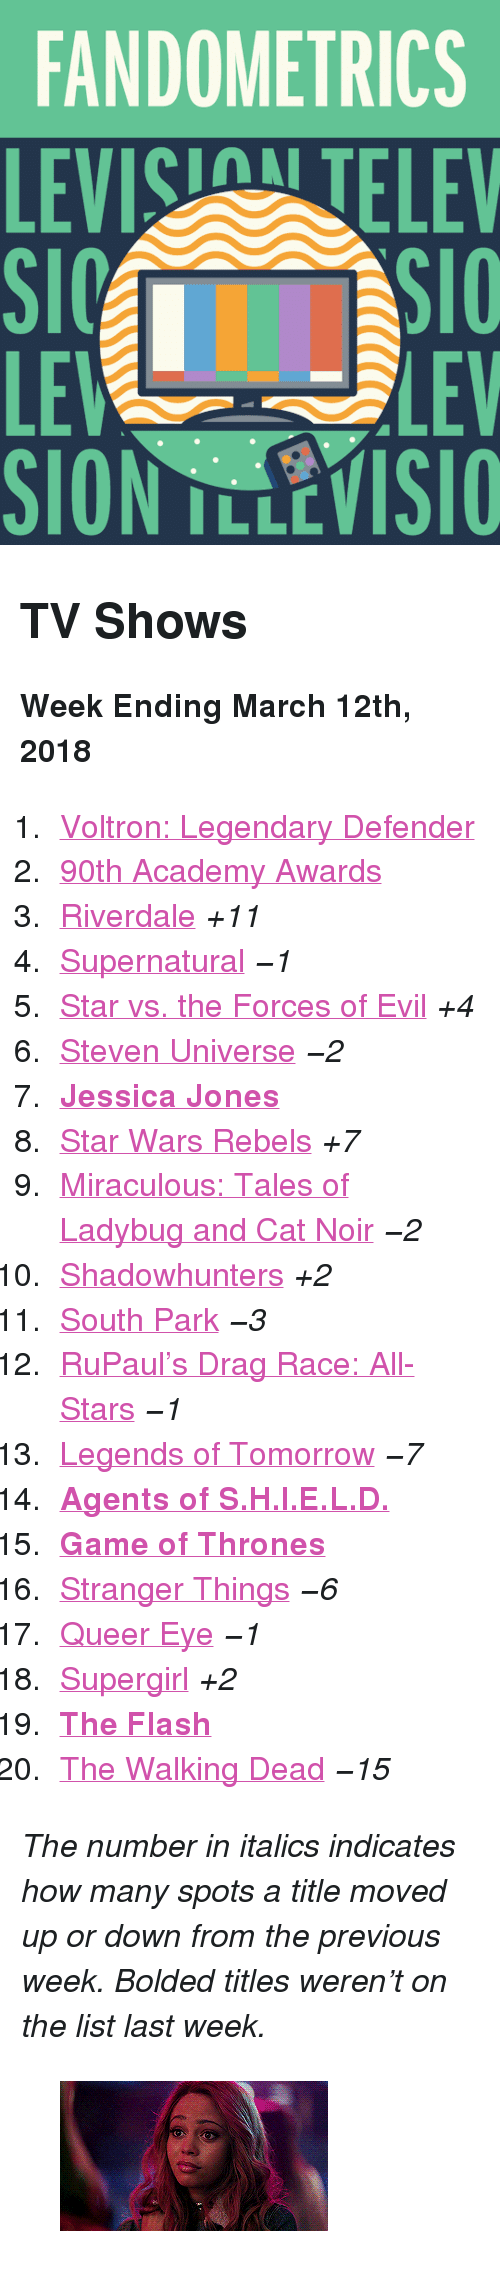 """Academy Awards: FANDOMETRICS  LEVIS TELEV  LE  LEV <h2>TV Shows</h2><p><b>Week Ending March 12th, 2018</b></p><ol><li><a href=""""http://www.tumblr.com/search/voltron"""">Voltron: Legendary Defender</a></li>  <li><a href=""""http://www.tumblr.com/search/oscars"""">90th Academy Awards</a></li>  <li><a href=""""http://www.tumblr.com/search/riverdale"""">Riverdale</a><i>+11</i></li>  <li><a href=""""http://www.tumblr.com/search/supernatural"""">Supernatural</a><i><i>−1</i></i></li>  <li><a href=""""http://www.tumblr.com/search/star%20vs%20the%20forces%20of%20evil"""">Star vs. the Forces of Evil</a><i>+4</i></li>  <li><a href=""""http://www.tumblr.com/search/steven%20universe"""">Steven Universe</a><i><i>−2</i></i></li>  <li><a href=""""http://www.tumblr.com/search/jessica%20jones""""><b>Jessica Jones</b></a></li>  <li><a href=""""http://www.tumblr.com/search/star%20wars%20rebels"""">Star Wars Rebels</a><i>+7</i></li>  <li><a href=""""http://www.tumblr.com/search/miraculous%20ladybug"""">Miraculous: Tales of Ladybug and Cat Noir</a><i><i>−2</i></i></li>  <li><a href=""""http://www.tumblr.com/search/shadowhunters"""">Shadowhunters</a><i>+2</i></li>  <li><a href=""""http://www.tumblr.com/search/south%20park"""">South Park</a><i><i>−3</i></i></li>  <li><a href=""""http://www.tumblr.com/search/rupaul's%20drag%20race"""">RuPaul&rsquo;s Drag Race: All-Stars</a><i><i>−1</i></i></li>  <li><a href=""""http://www.tumblr.com/search/legends%20of%20tomorrow"""">Legends of Tomorrow</a><i><i>−7</i></i></li>  <li><b><a href=""""http://www.tumblr.com/search/agents%20of%20shield"""">Agents of S.H.I.E.L.D.</a></b></li>  <li><a href=""""http://www.tumblr.com/search/game%20of%20thrones""""><b>Game of Thrones</b></a></li>  <li><a href=""""http://www.tumblr.com/search/stranger%20things"""">Stranger Things</a><i><i>−6</i></i></li>  <li><a href=""""http://www.tumblr.com/search/queer%20eye"""">Queer Eye</a><i><i>−1</i></i></li>  <li><a href=""""http://www.tumblr.com/search/supergirl"""">Supergirl</a><i>+2</i></li>  <li><a href=""""http://www.tumblr.com/search/the%20flash""""><b>The Flash</b></a></li>  <li><"""